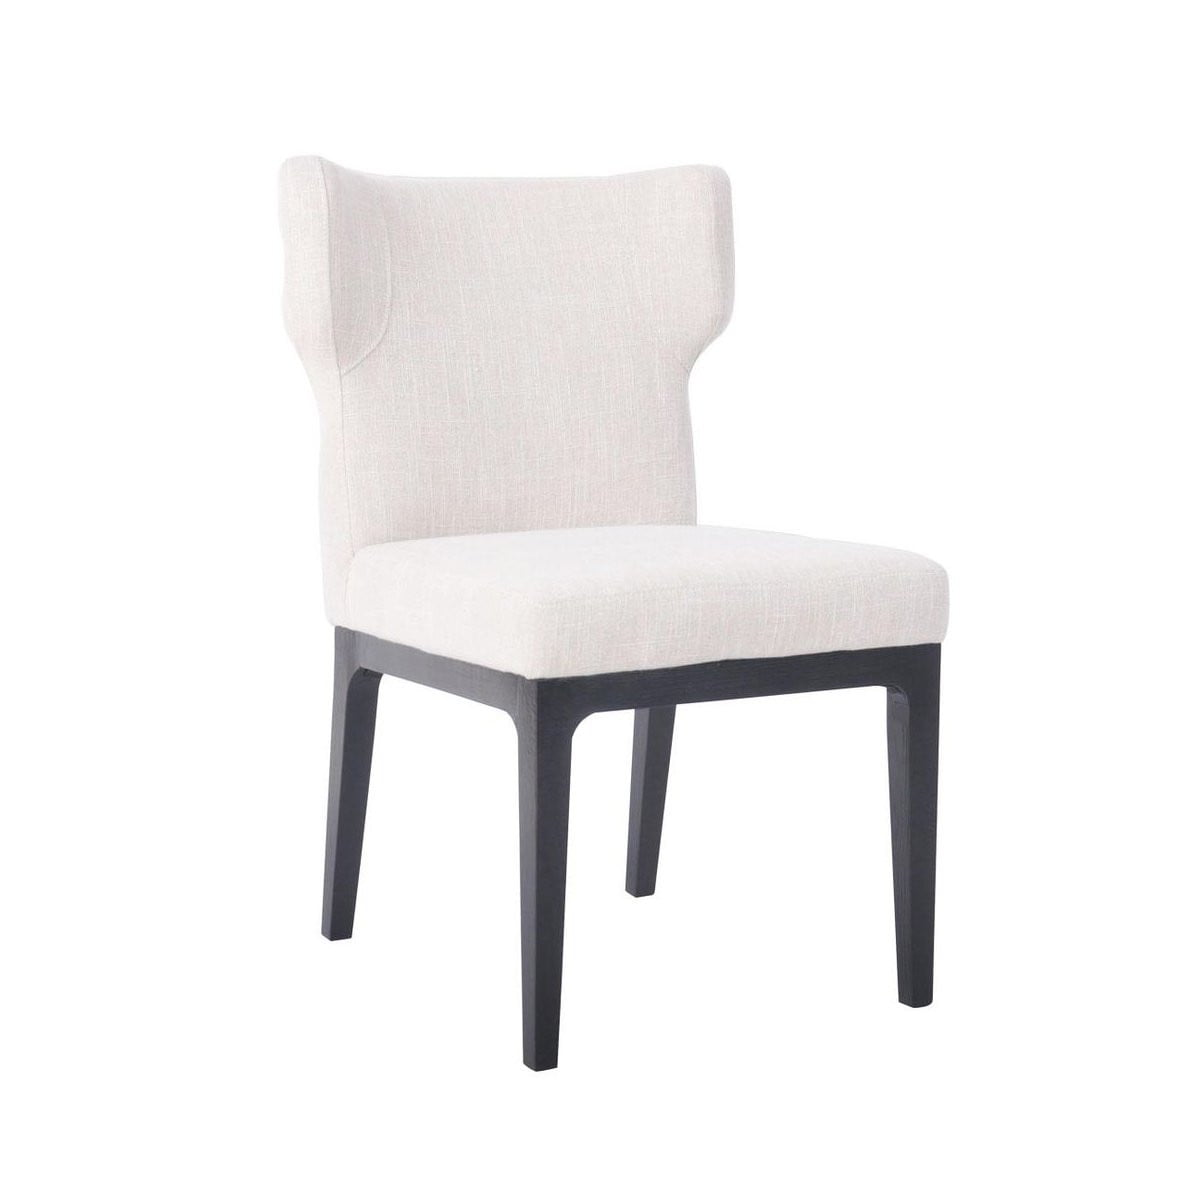 Ashton Black Dining Chair - Natural Linen